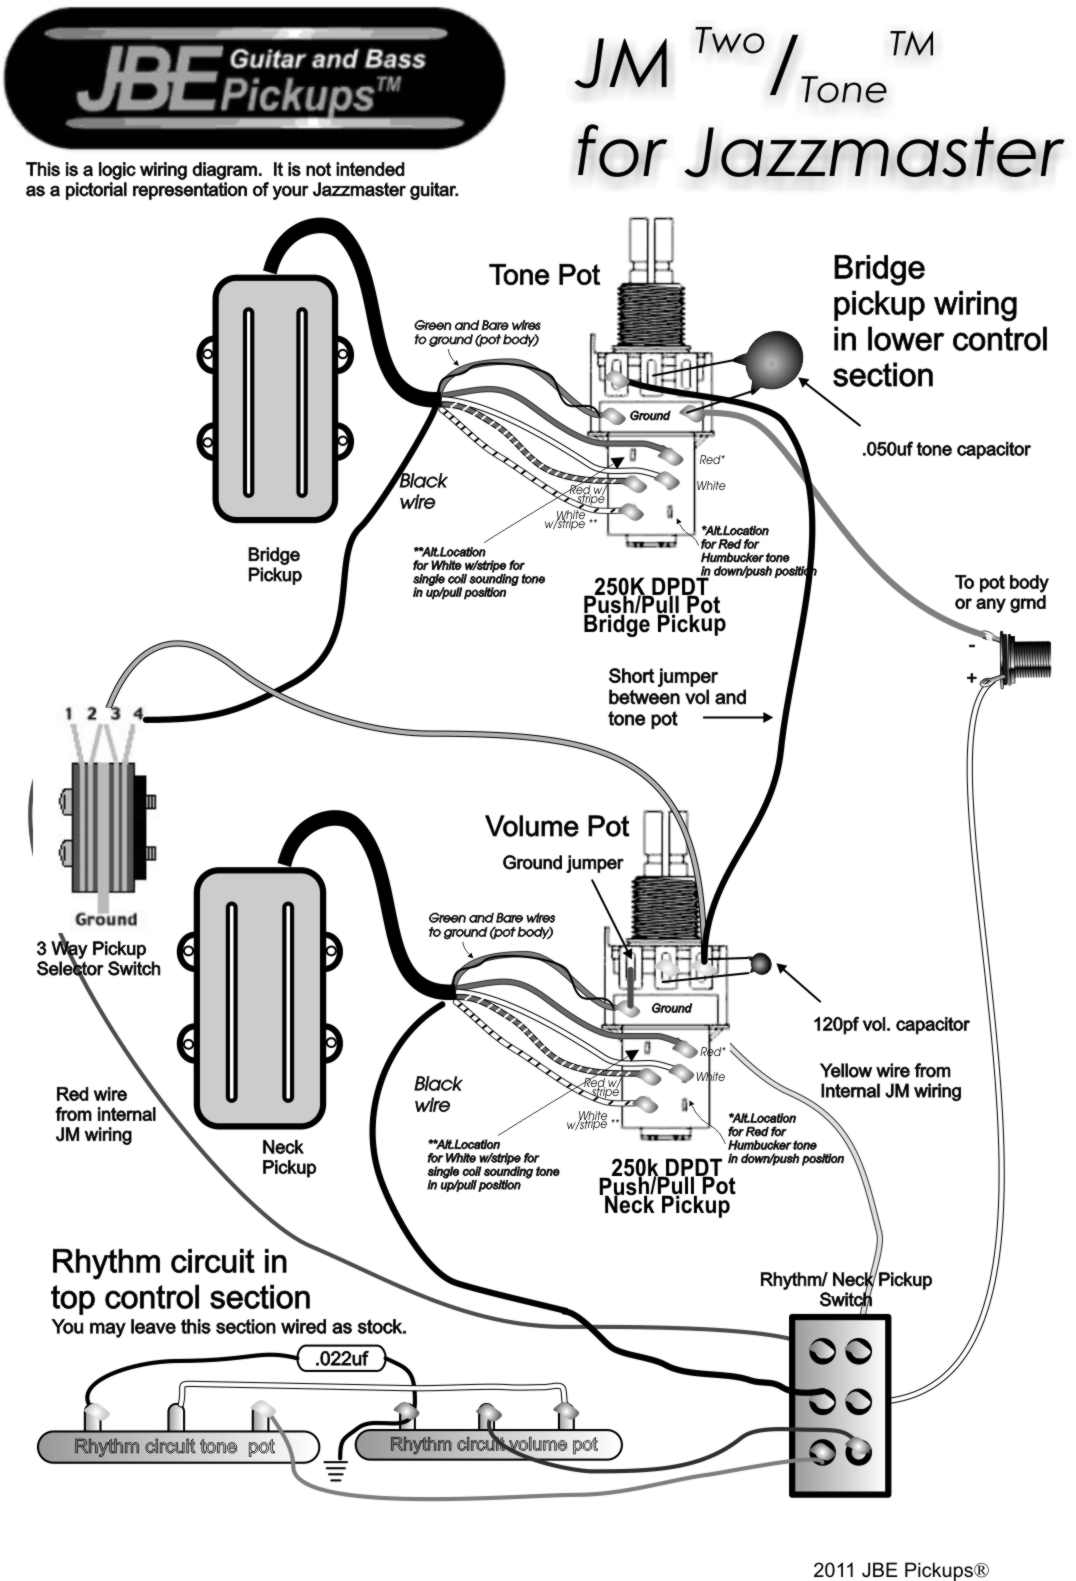 Series Parallel Humbucker Wiring Diagram Database